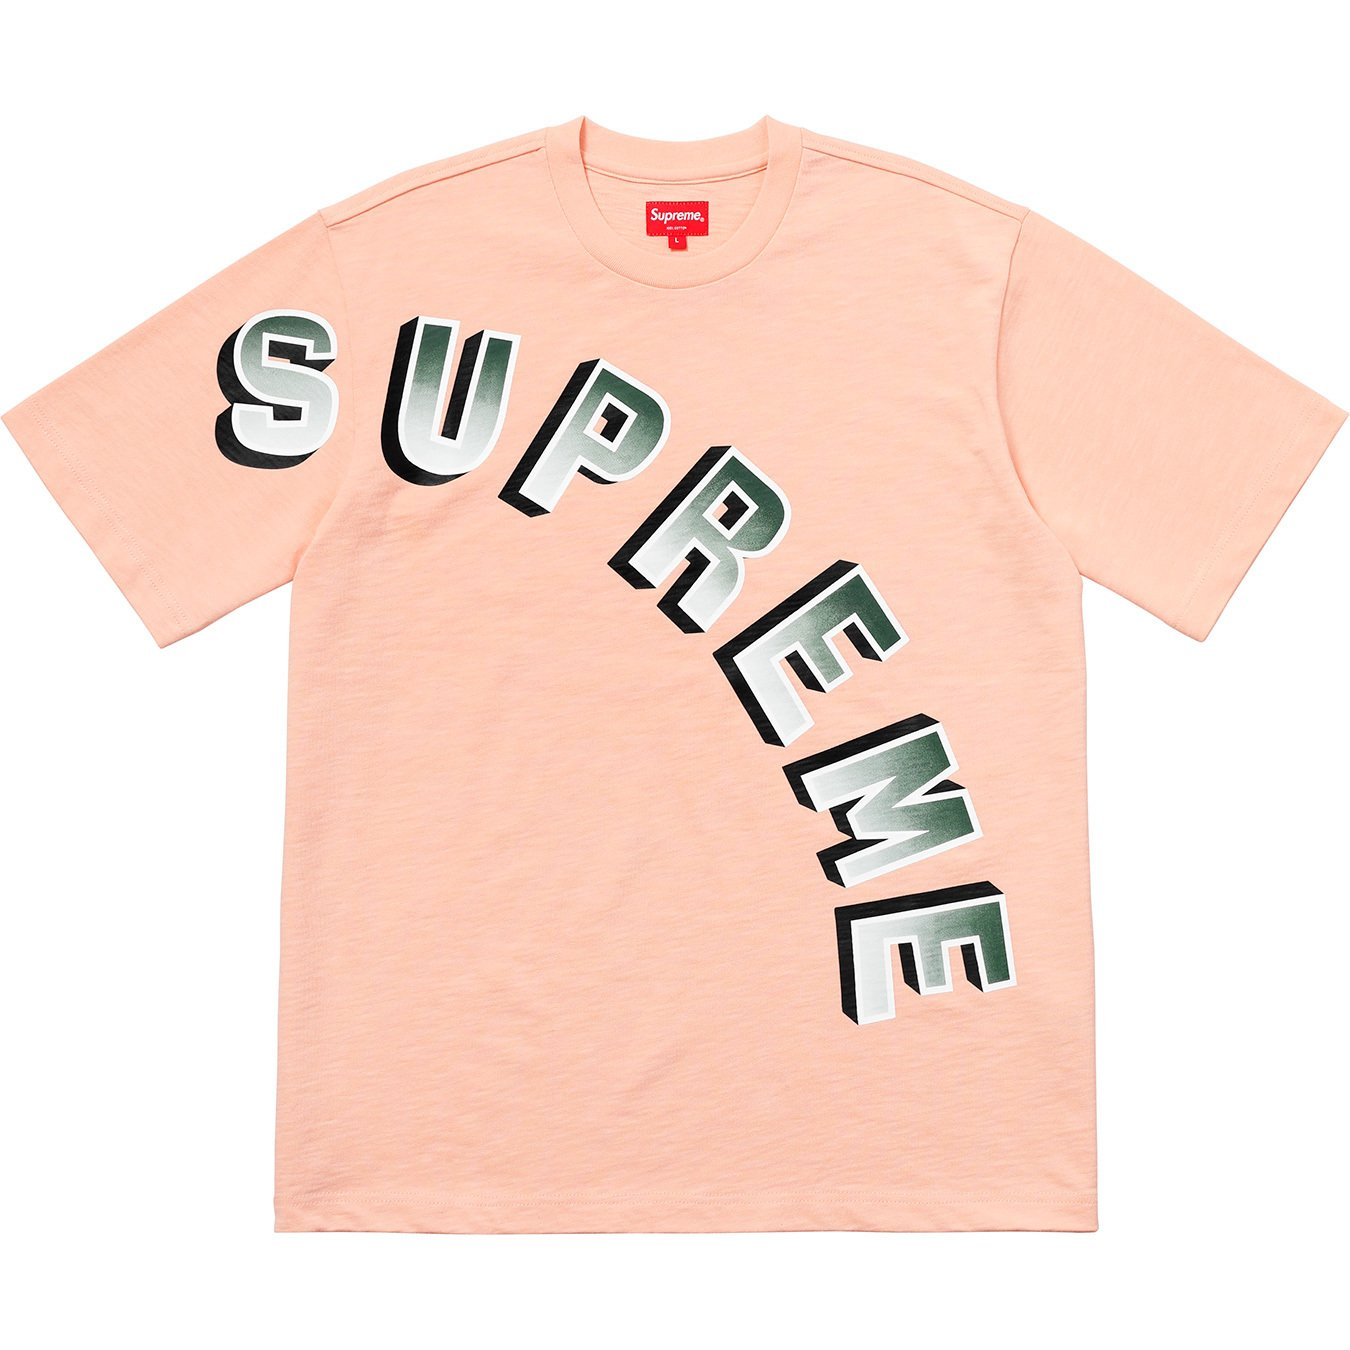 supreme-18ss-spring-summer-gradient-arc-top